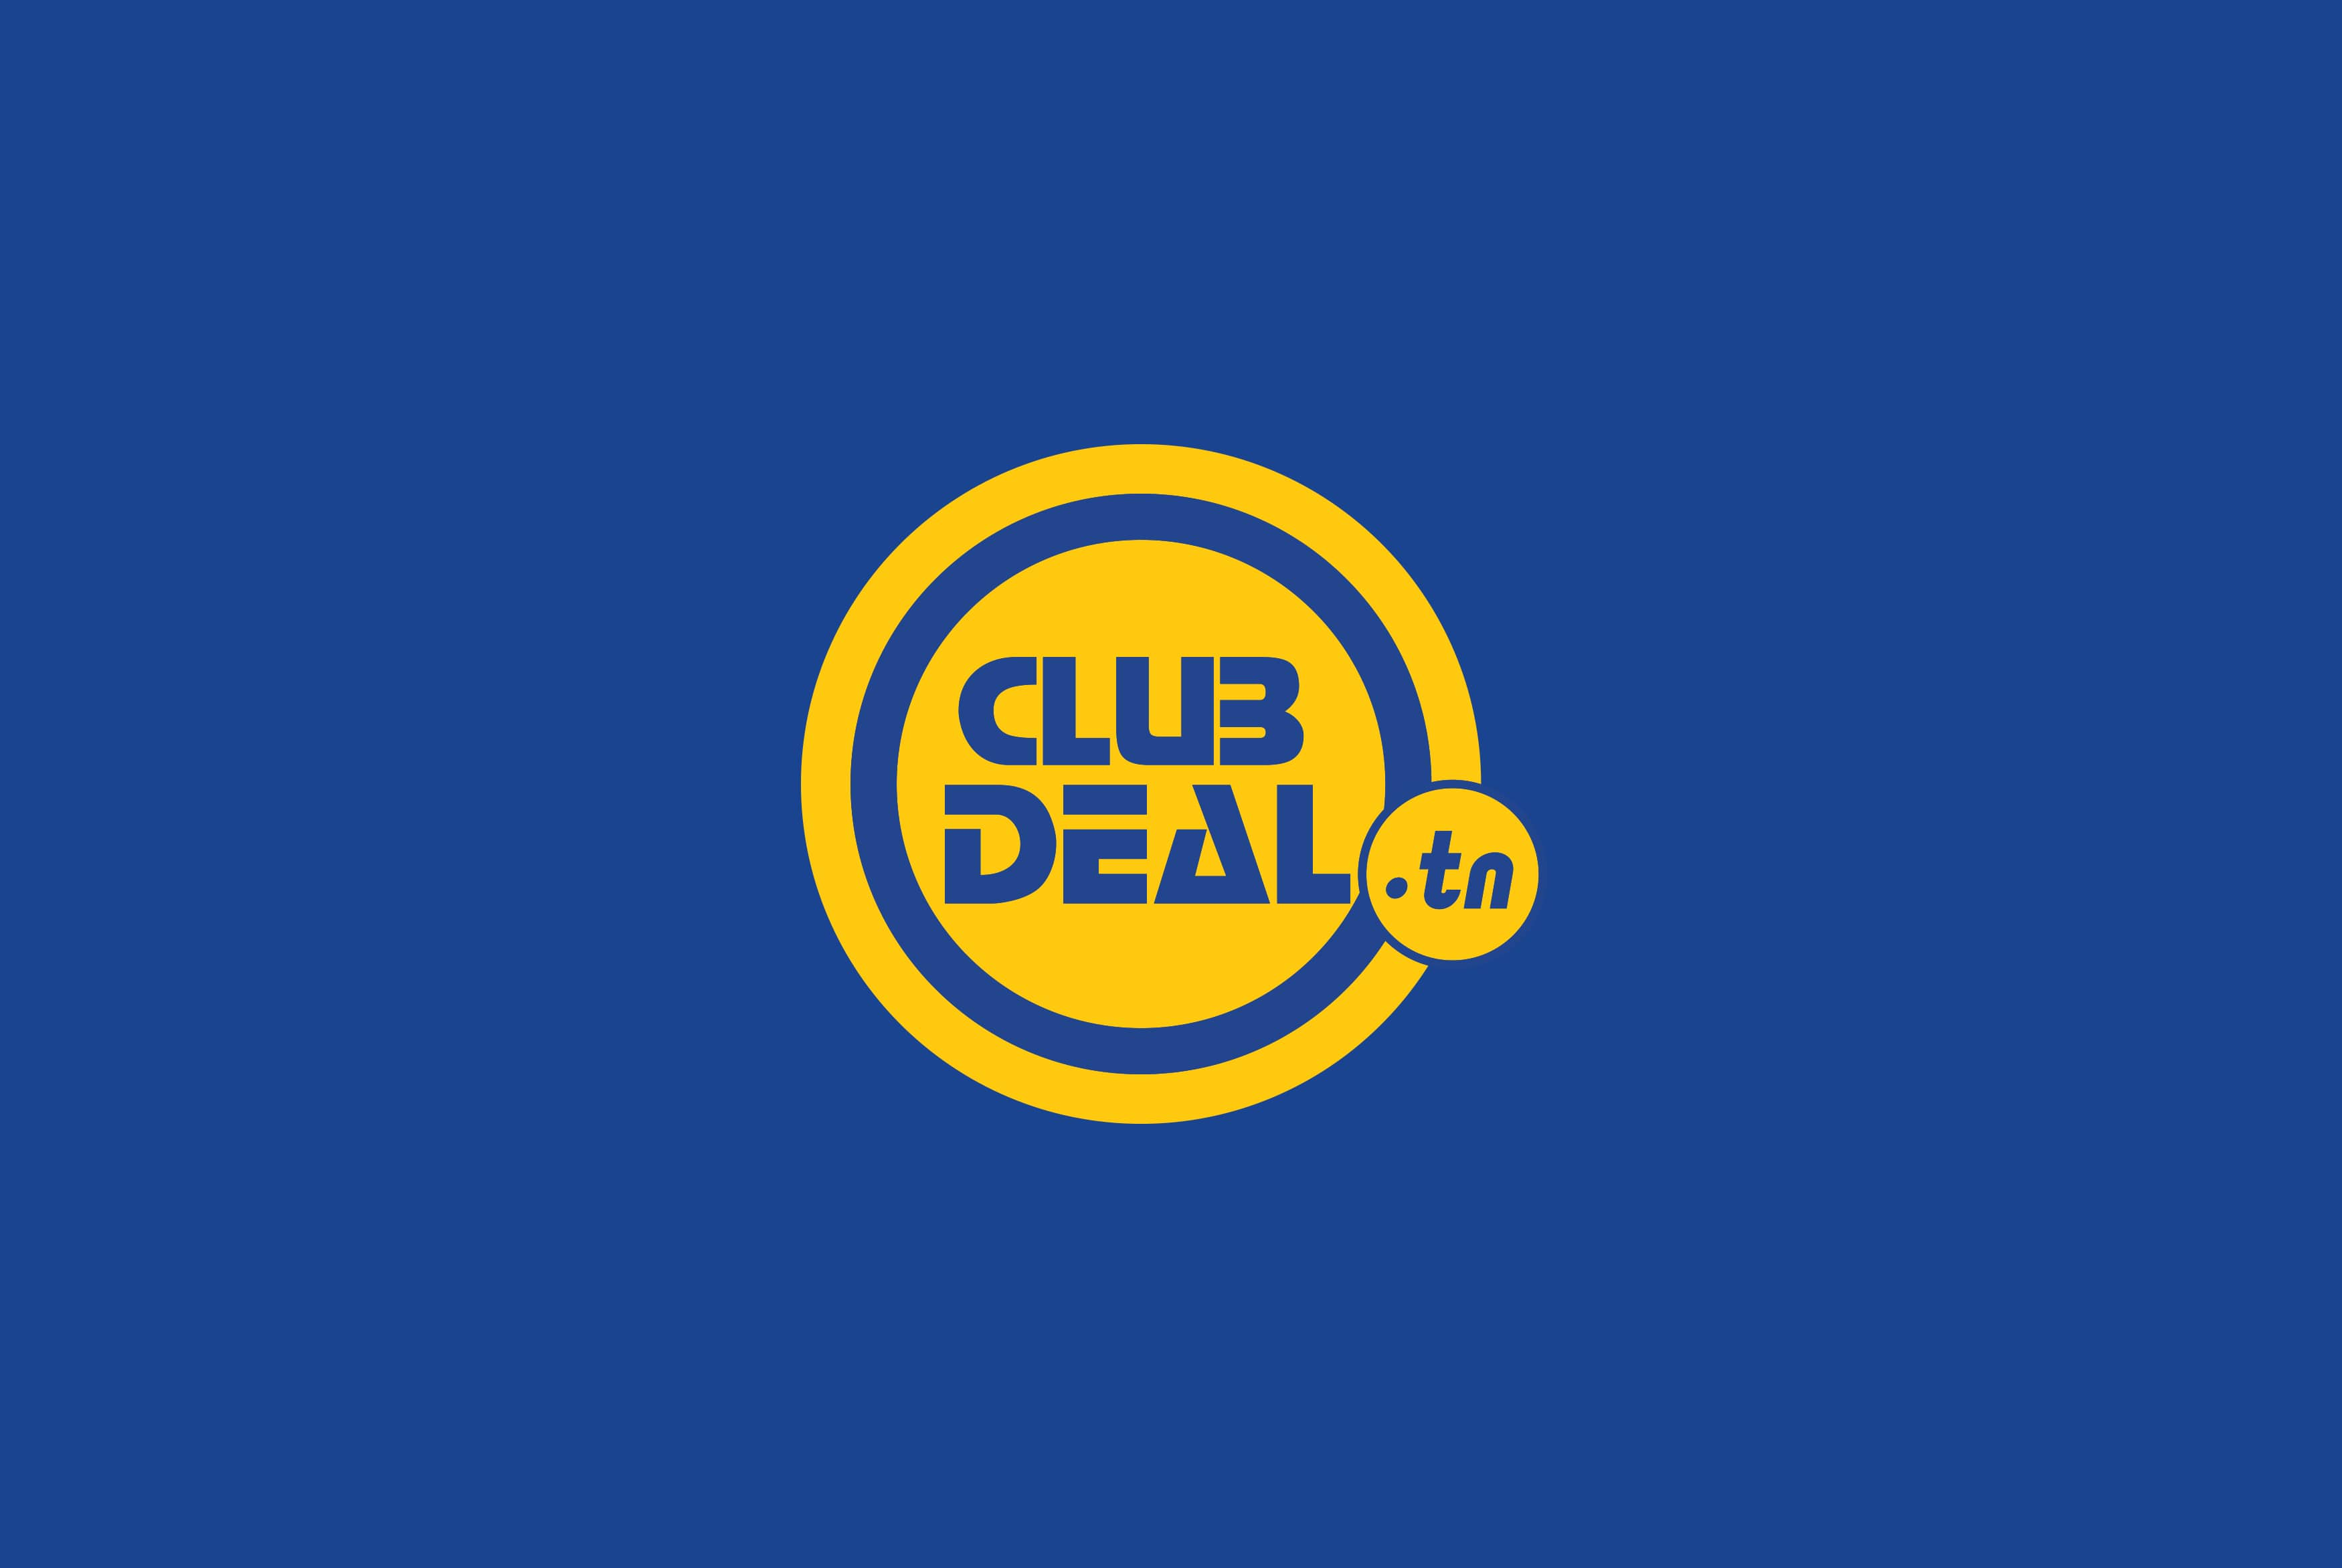 graphic charter for Club Deal